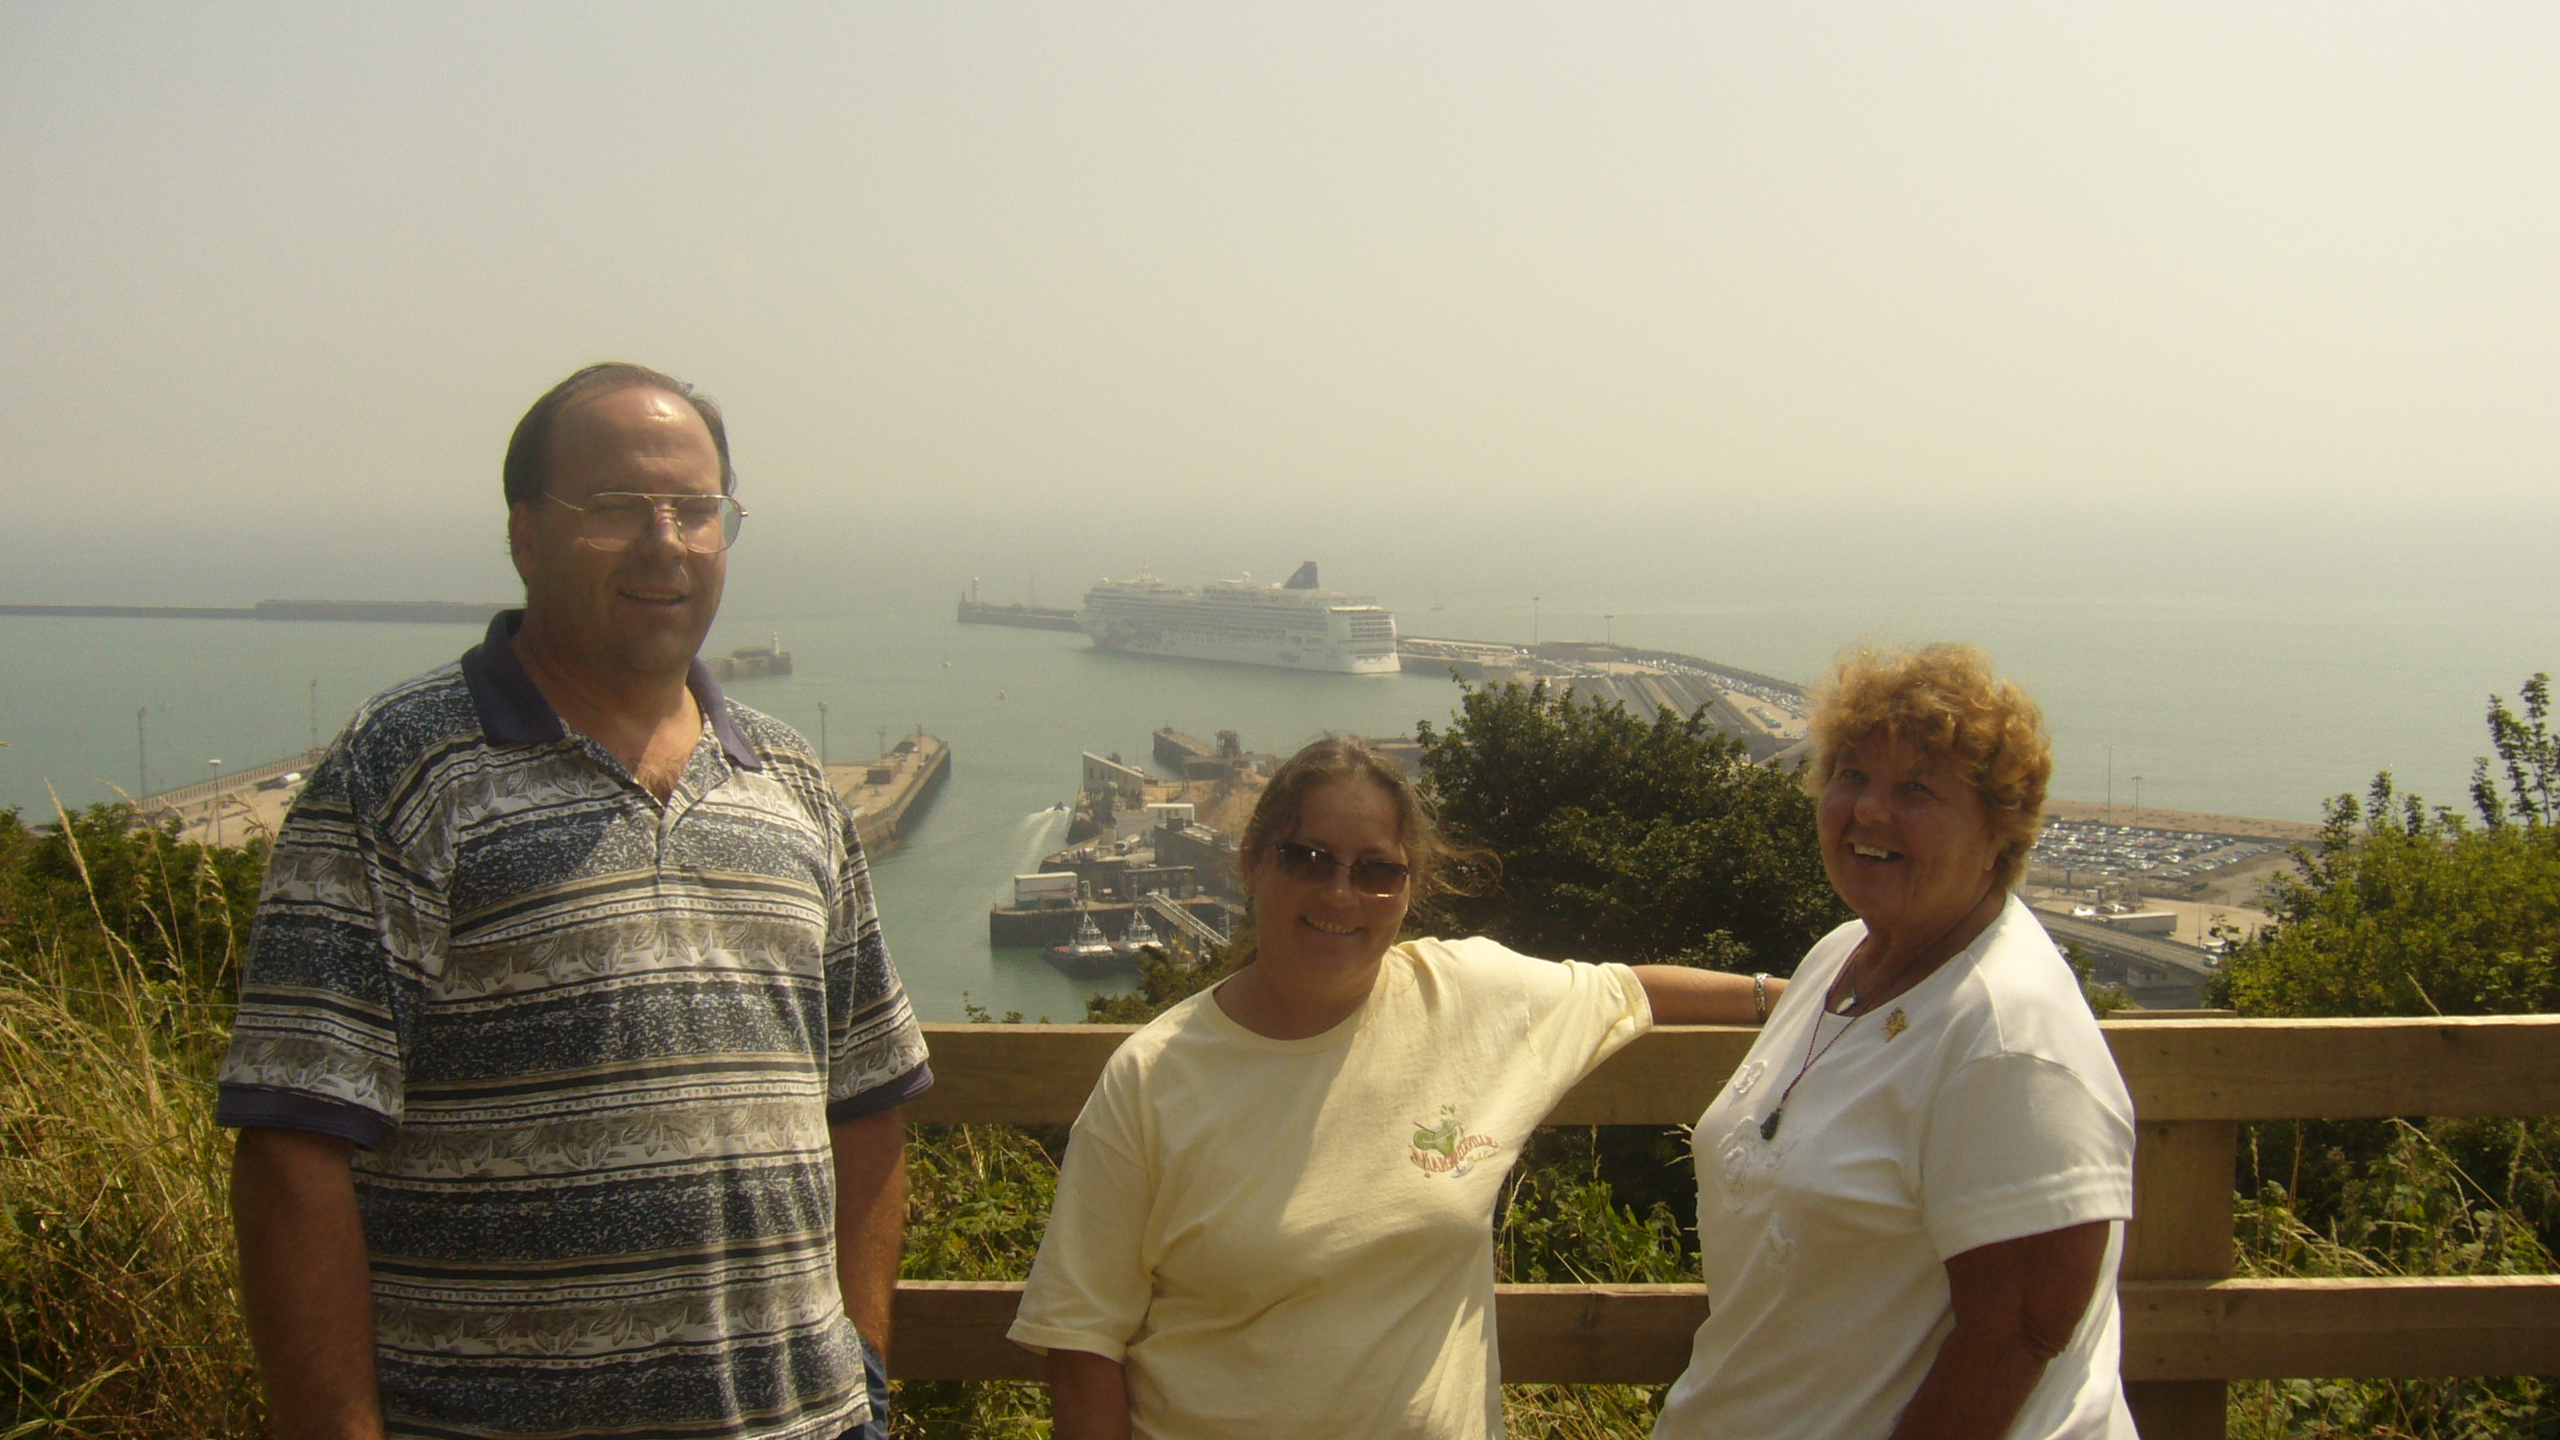 Happy Guests sight seeing Dover on the way to a cruise